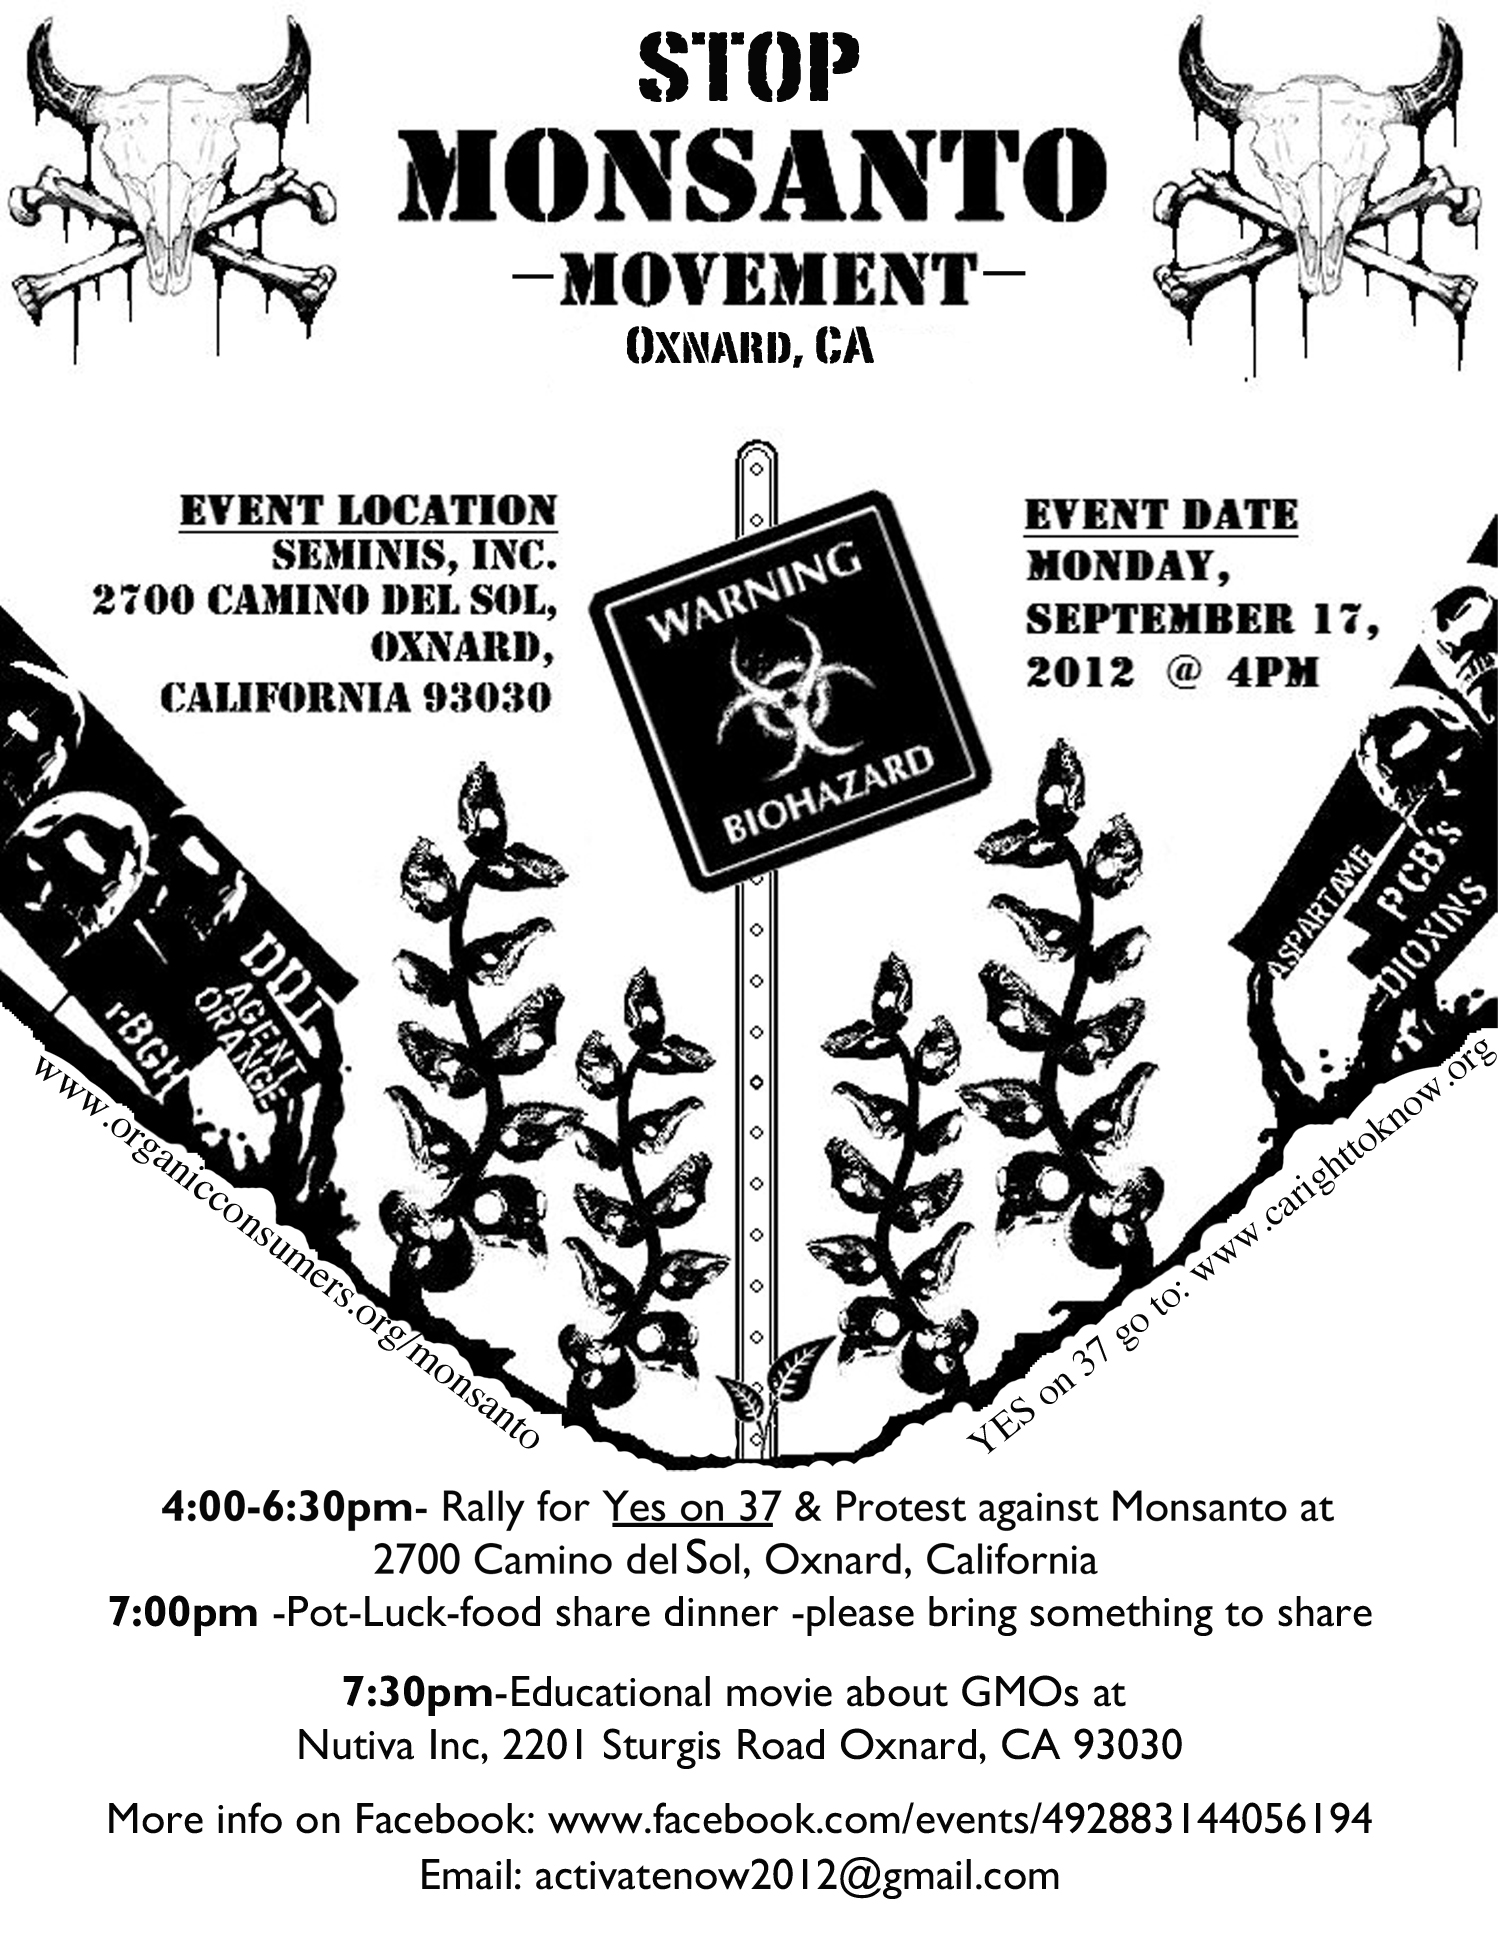 Oxnard MonsantoFlyerFinal Stop Monsanto Movement   Oxnard, California, 4:00PM, 9/17 Stop Monsanto Movement Protest potluck Oxnard Nutiva Movie GCU food Demonstration Decontamination Event California CA